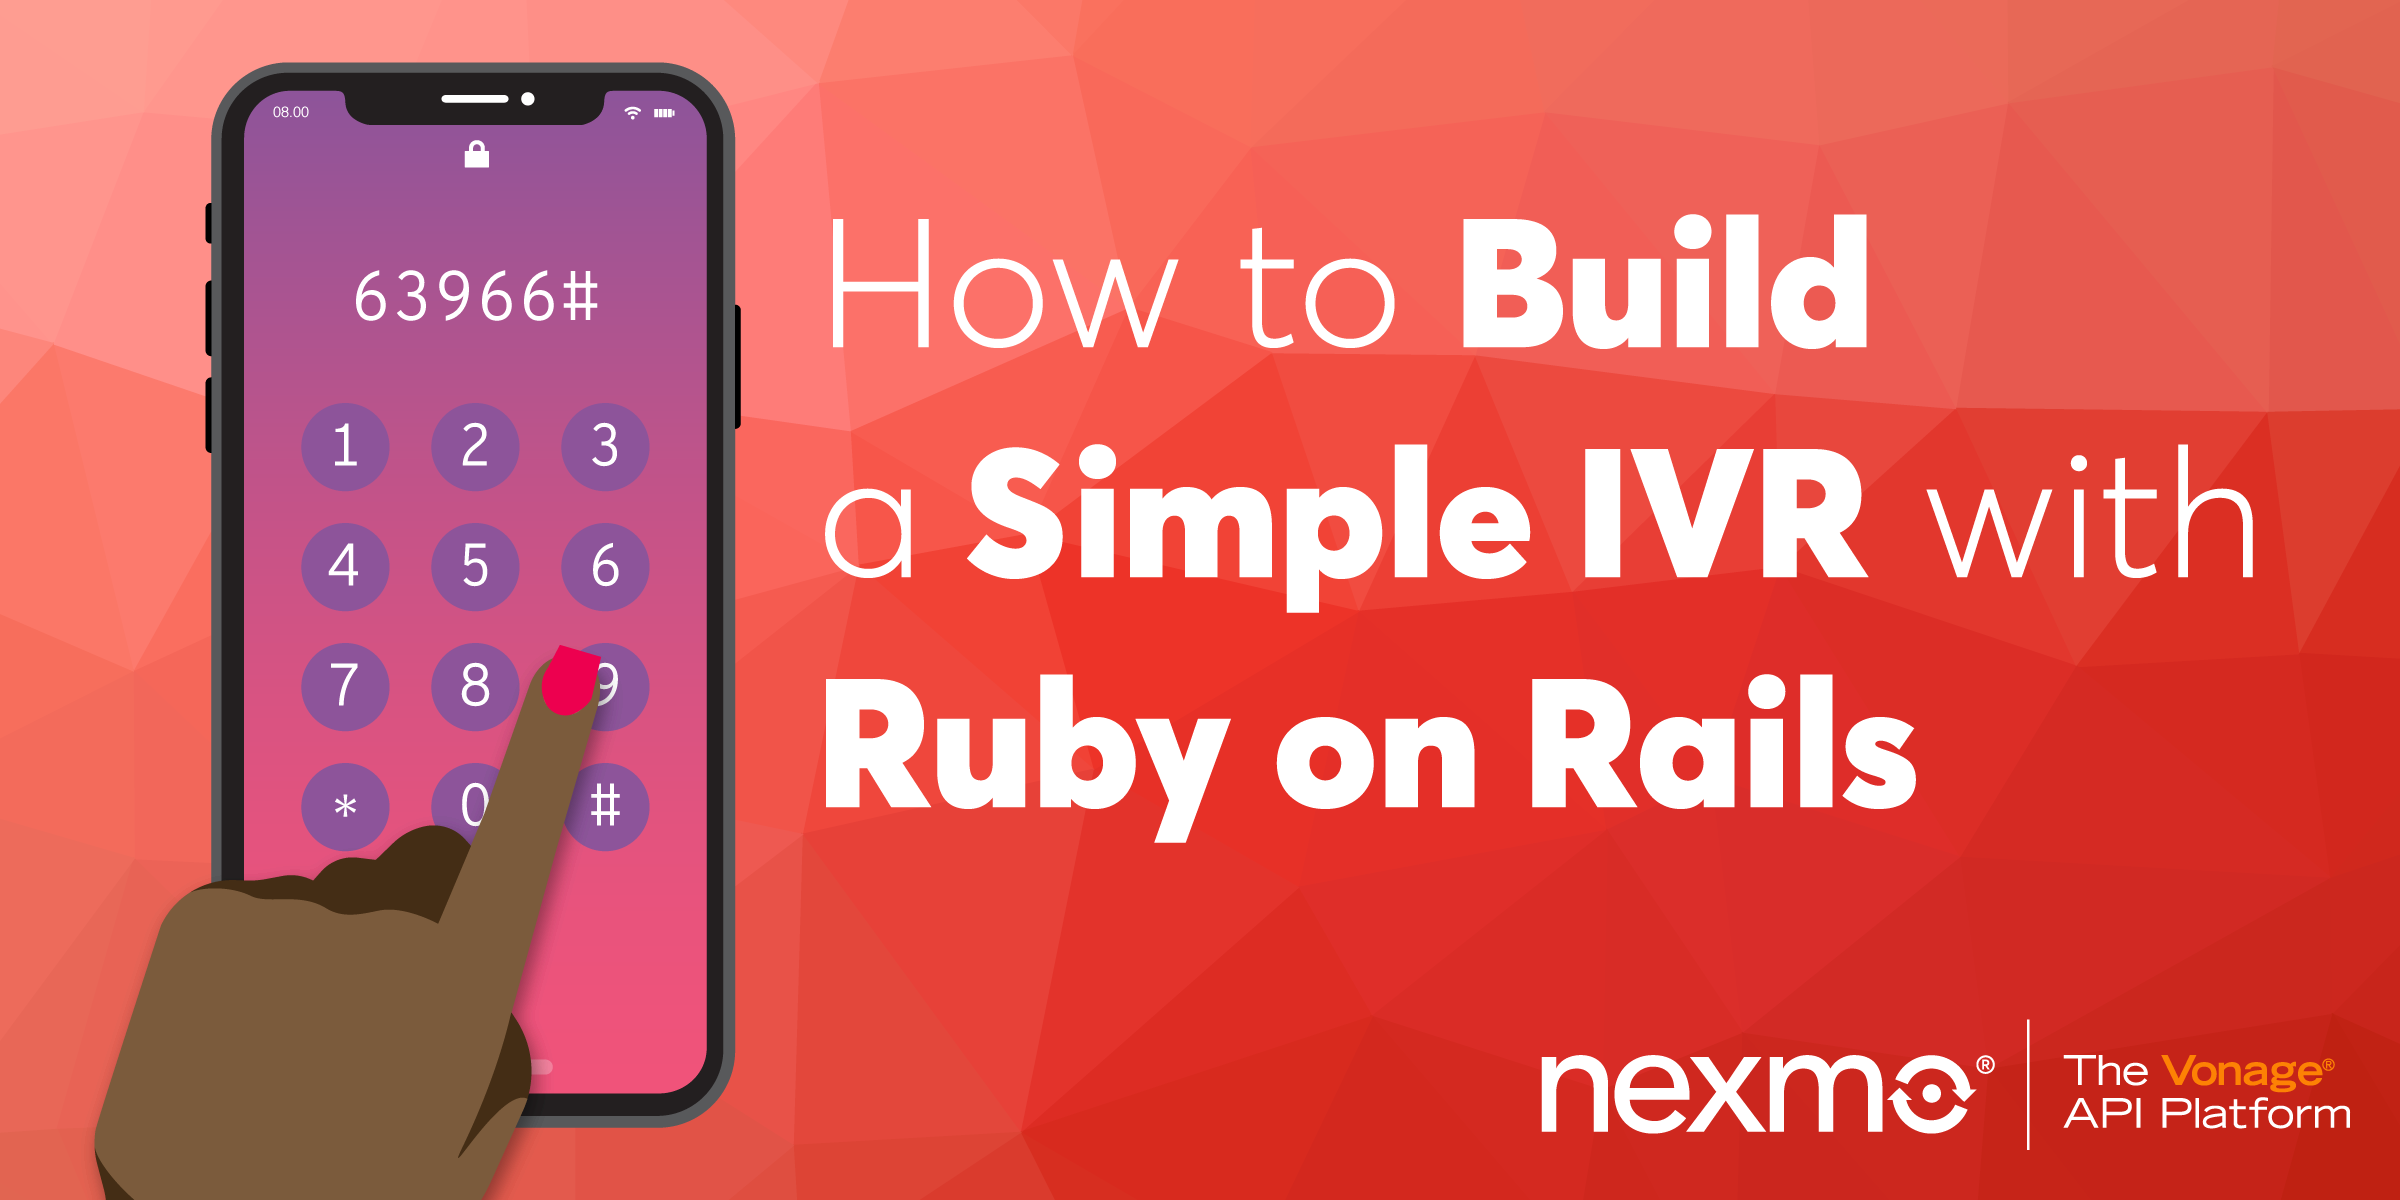 How to Build a Simple IVR with Ruby on Rails